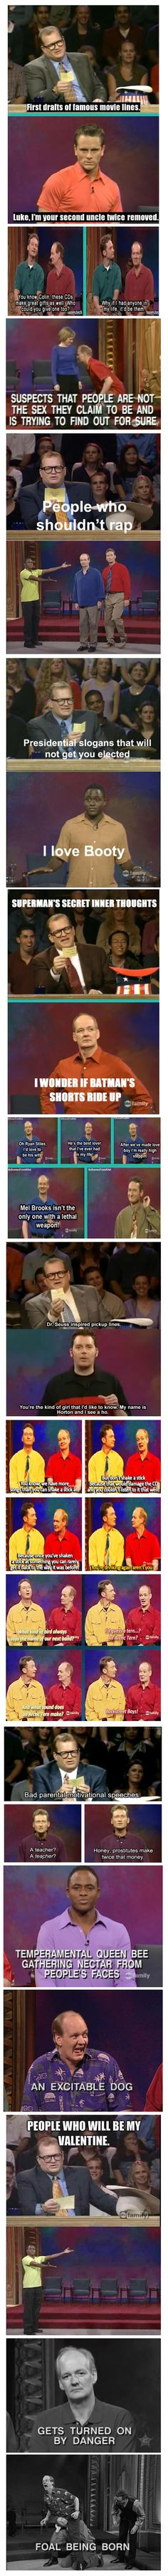 Some of the Best Moments from Whose Line Is It Anyway   I Think My Moms Gone CrazyI Think My Moms Gone Crazy